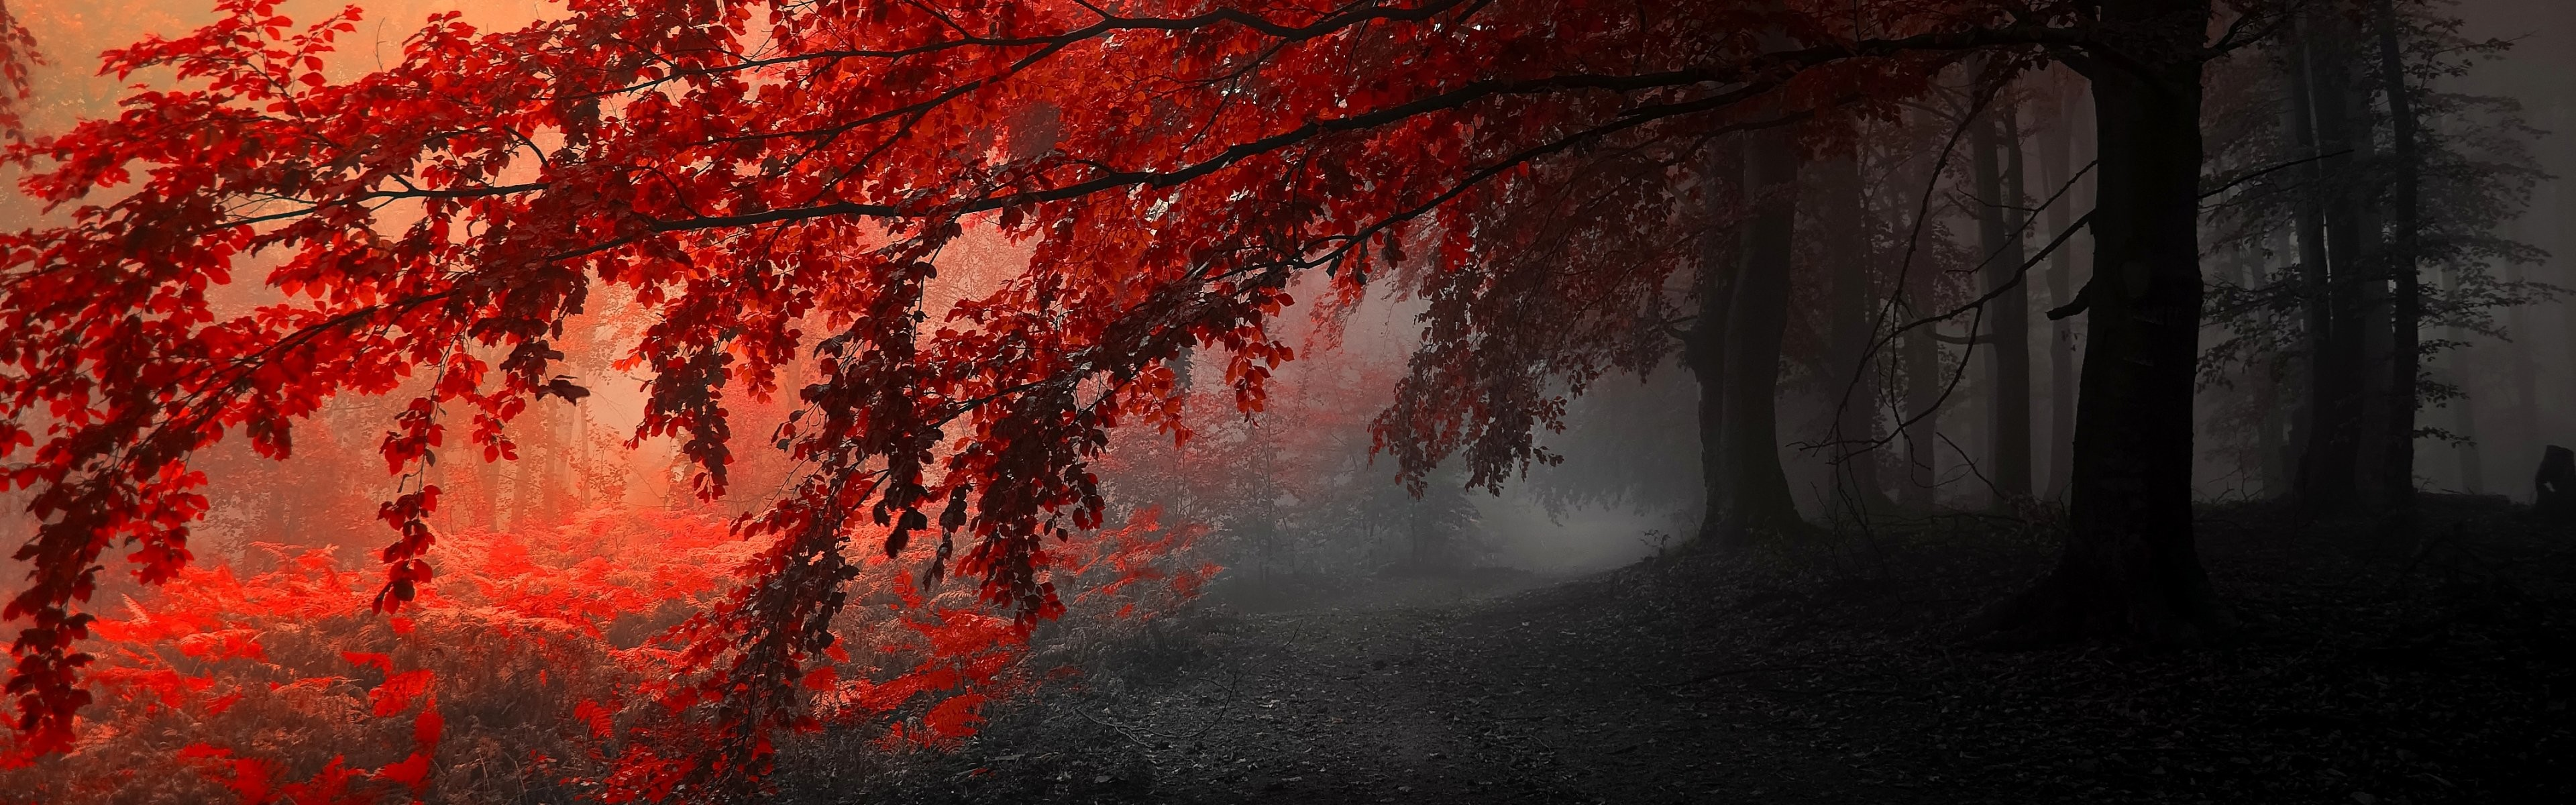 Fall Wallpapers Multiple Monitors Dual Monitor Wallpapers Hd 53 Background Pictures